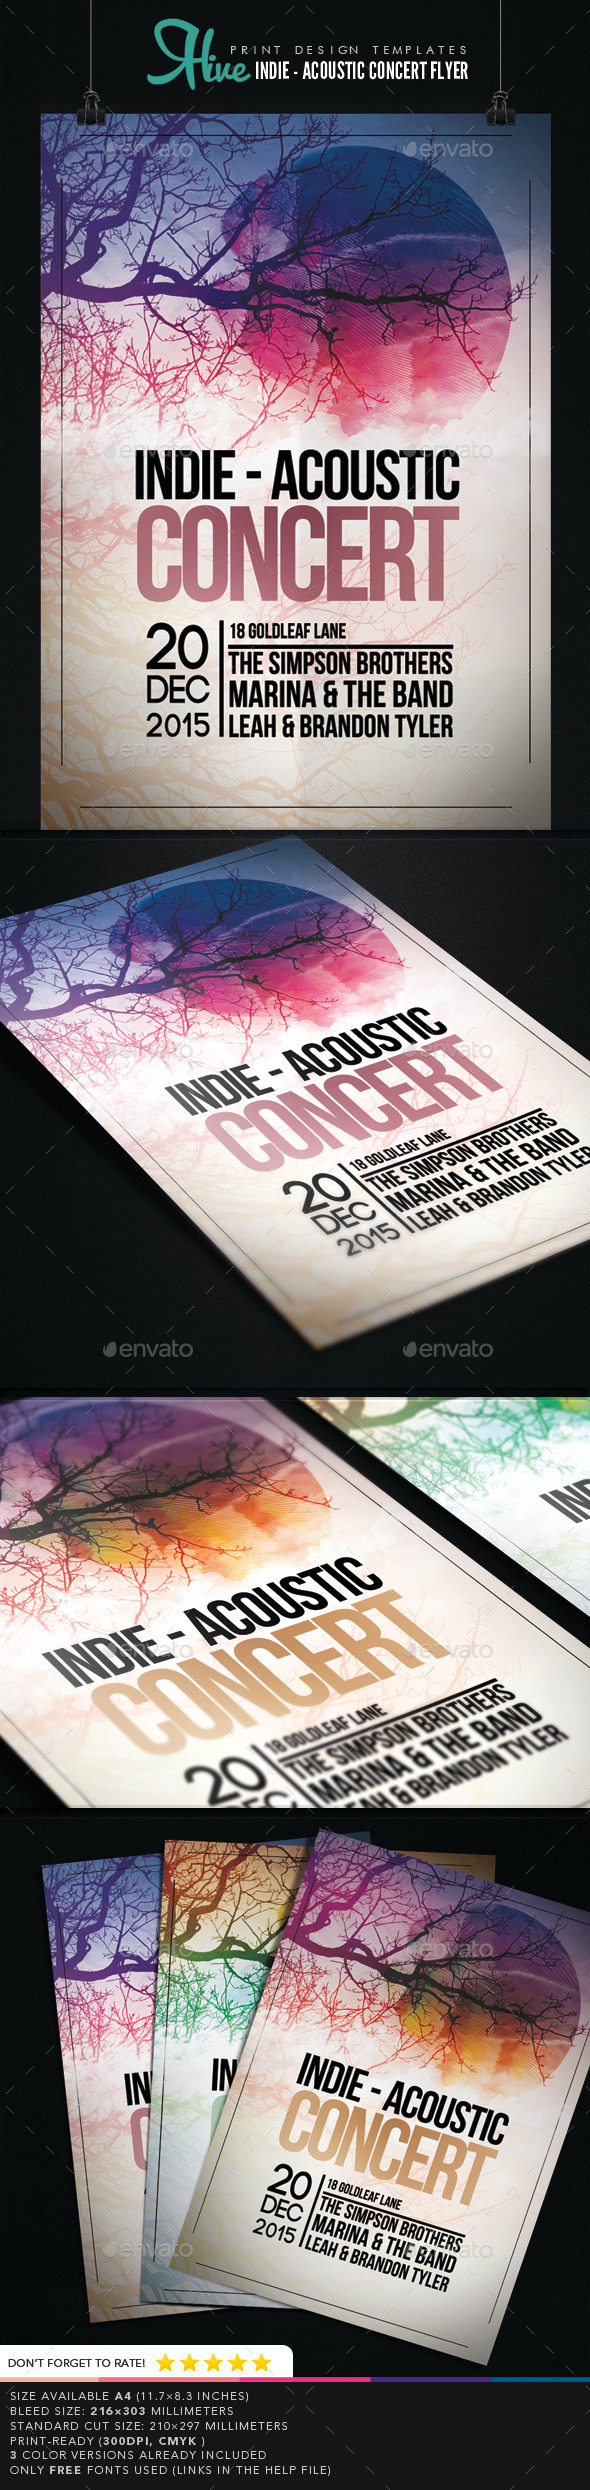 Indie - Acoustic Concert Flyer  - Concerts Events